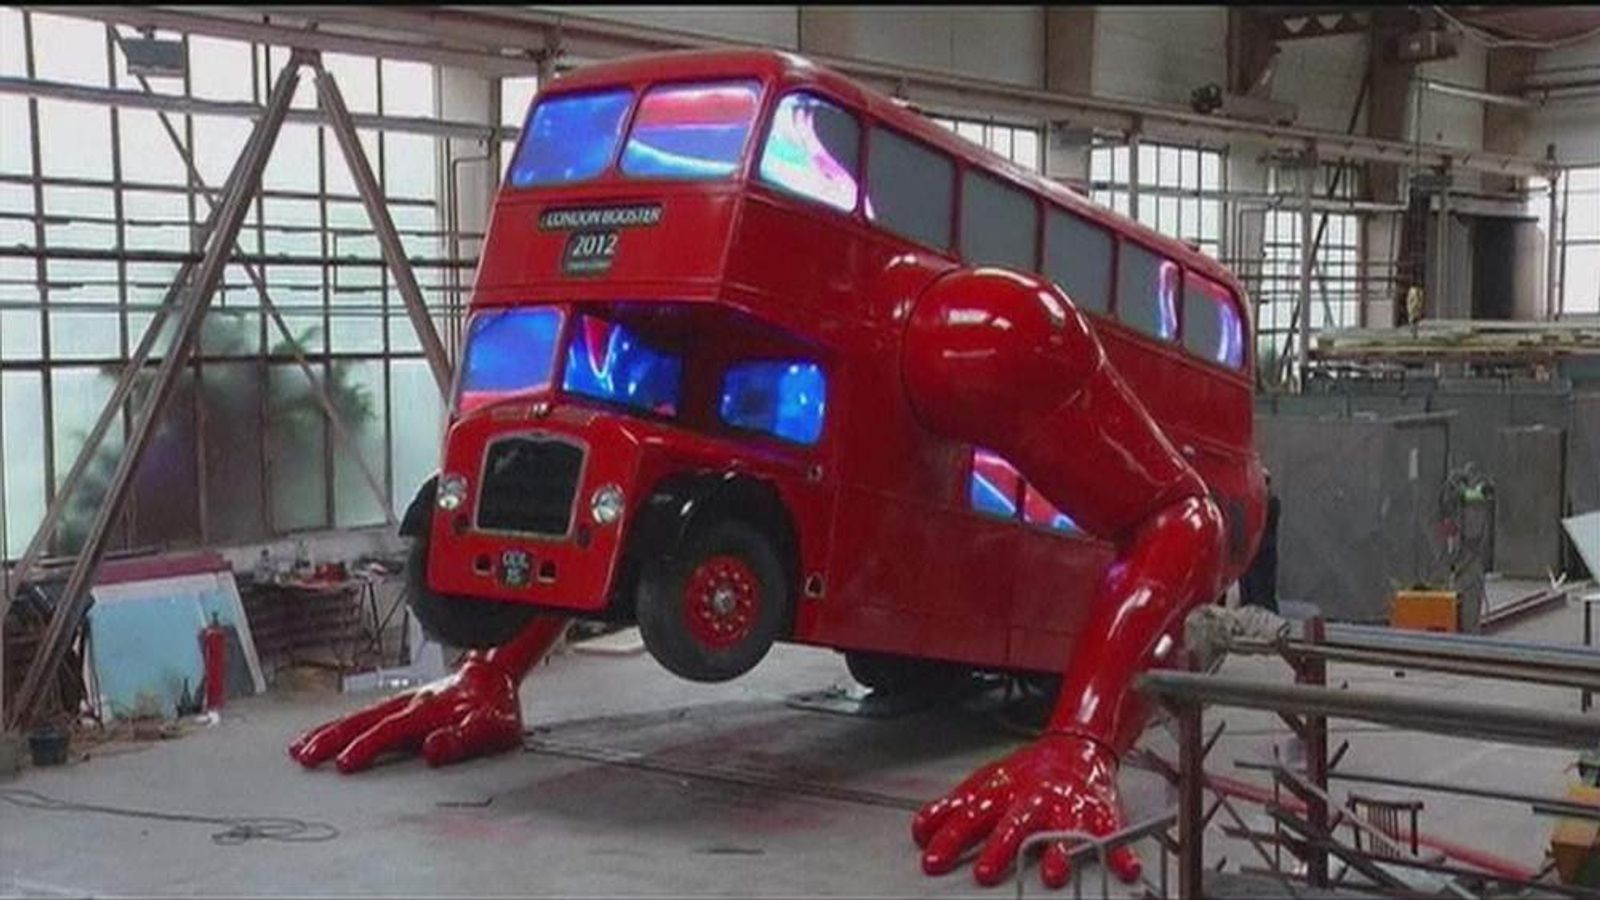 London Bus Does Push_Ups In Latest Work By Artist David Cerny